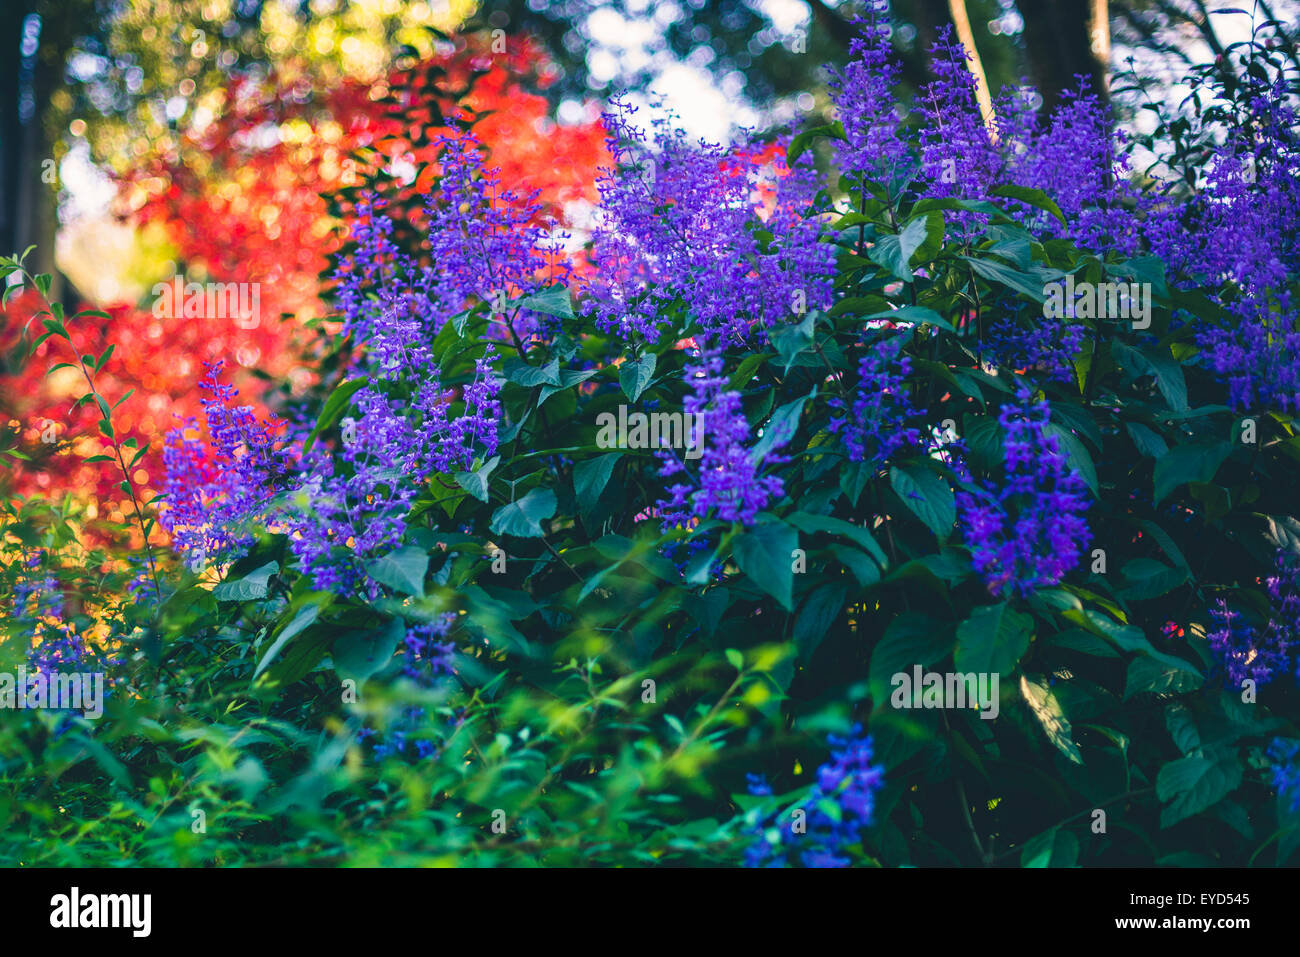 Bright blue and red  flowers, close up - Stock Image